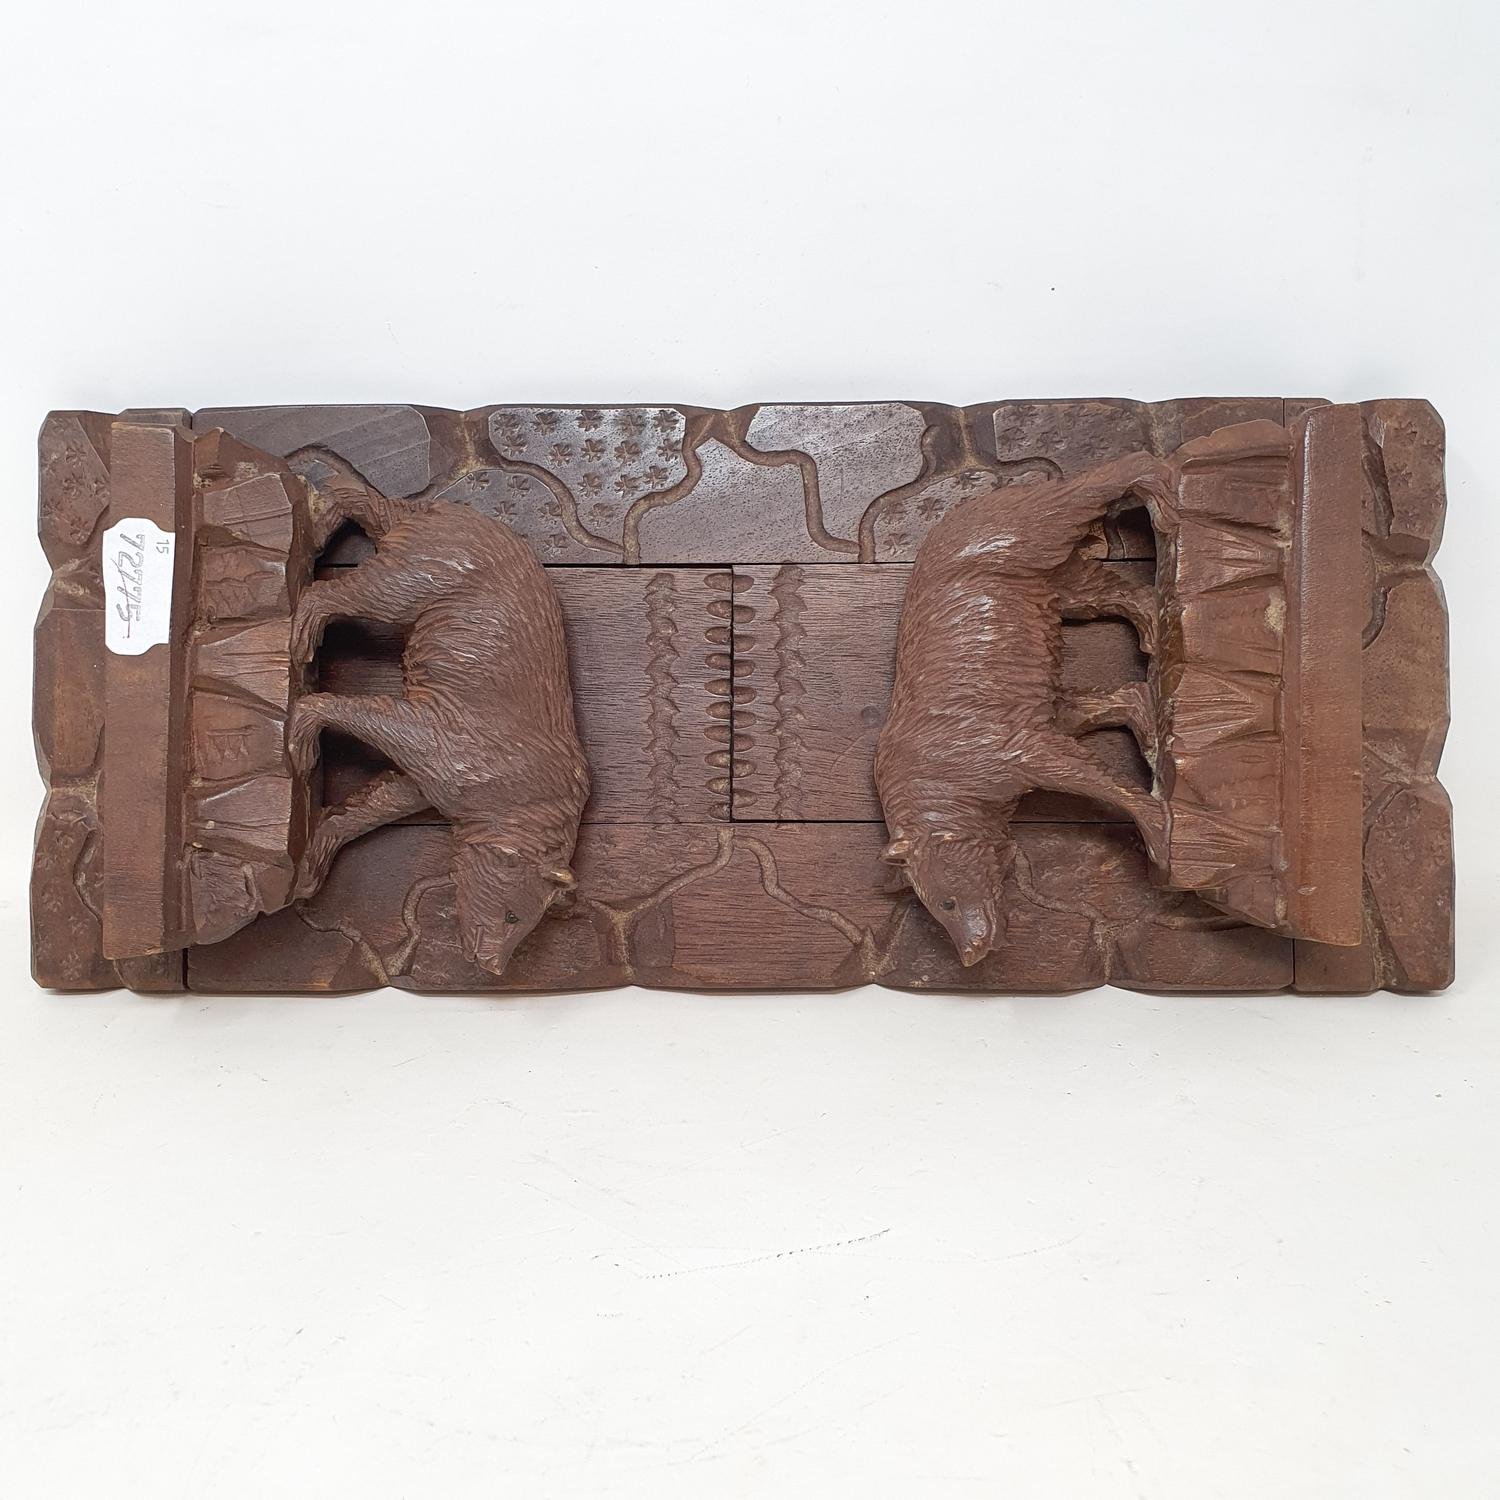 A late 19th/early 20th century Black Forest expanding book trough, carved bears, 43 cm wide ( - Image 2 of 2